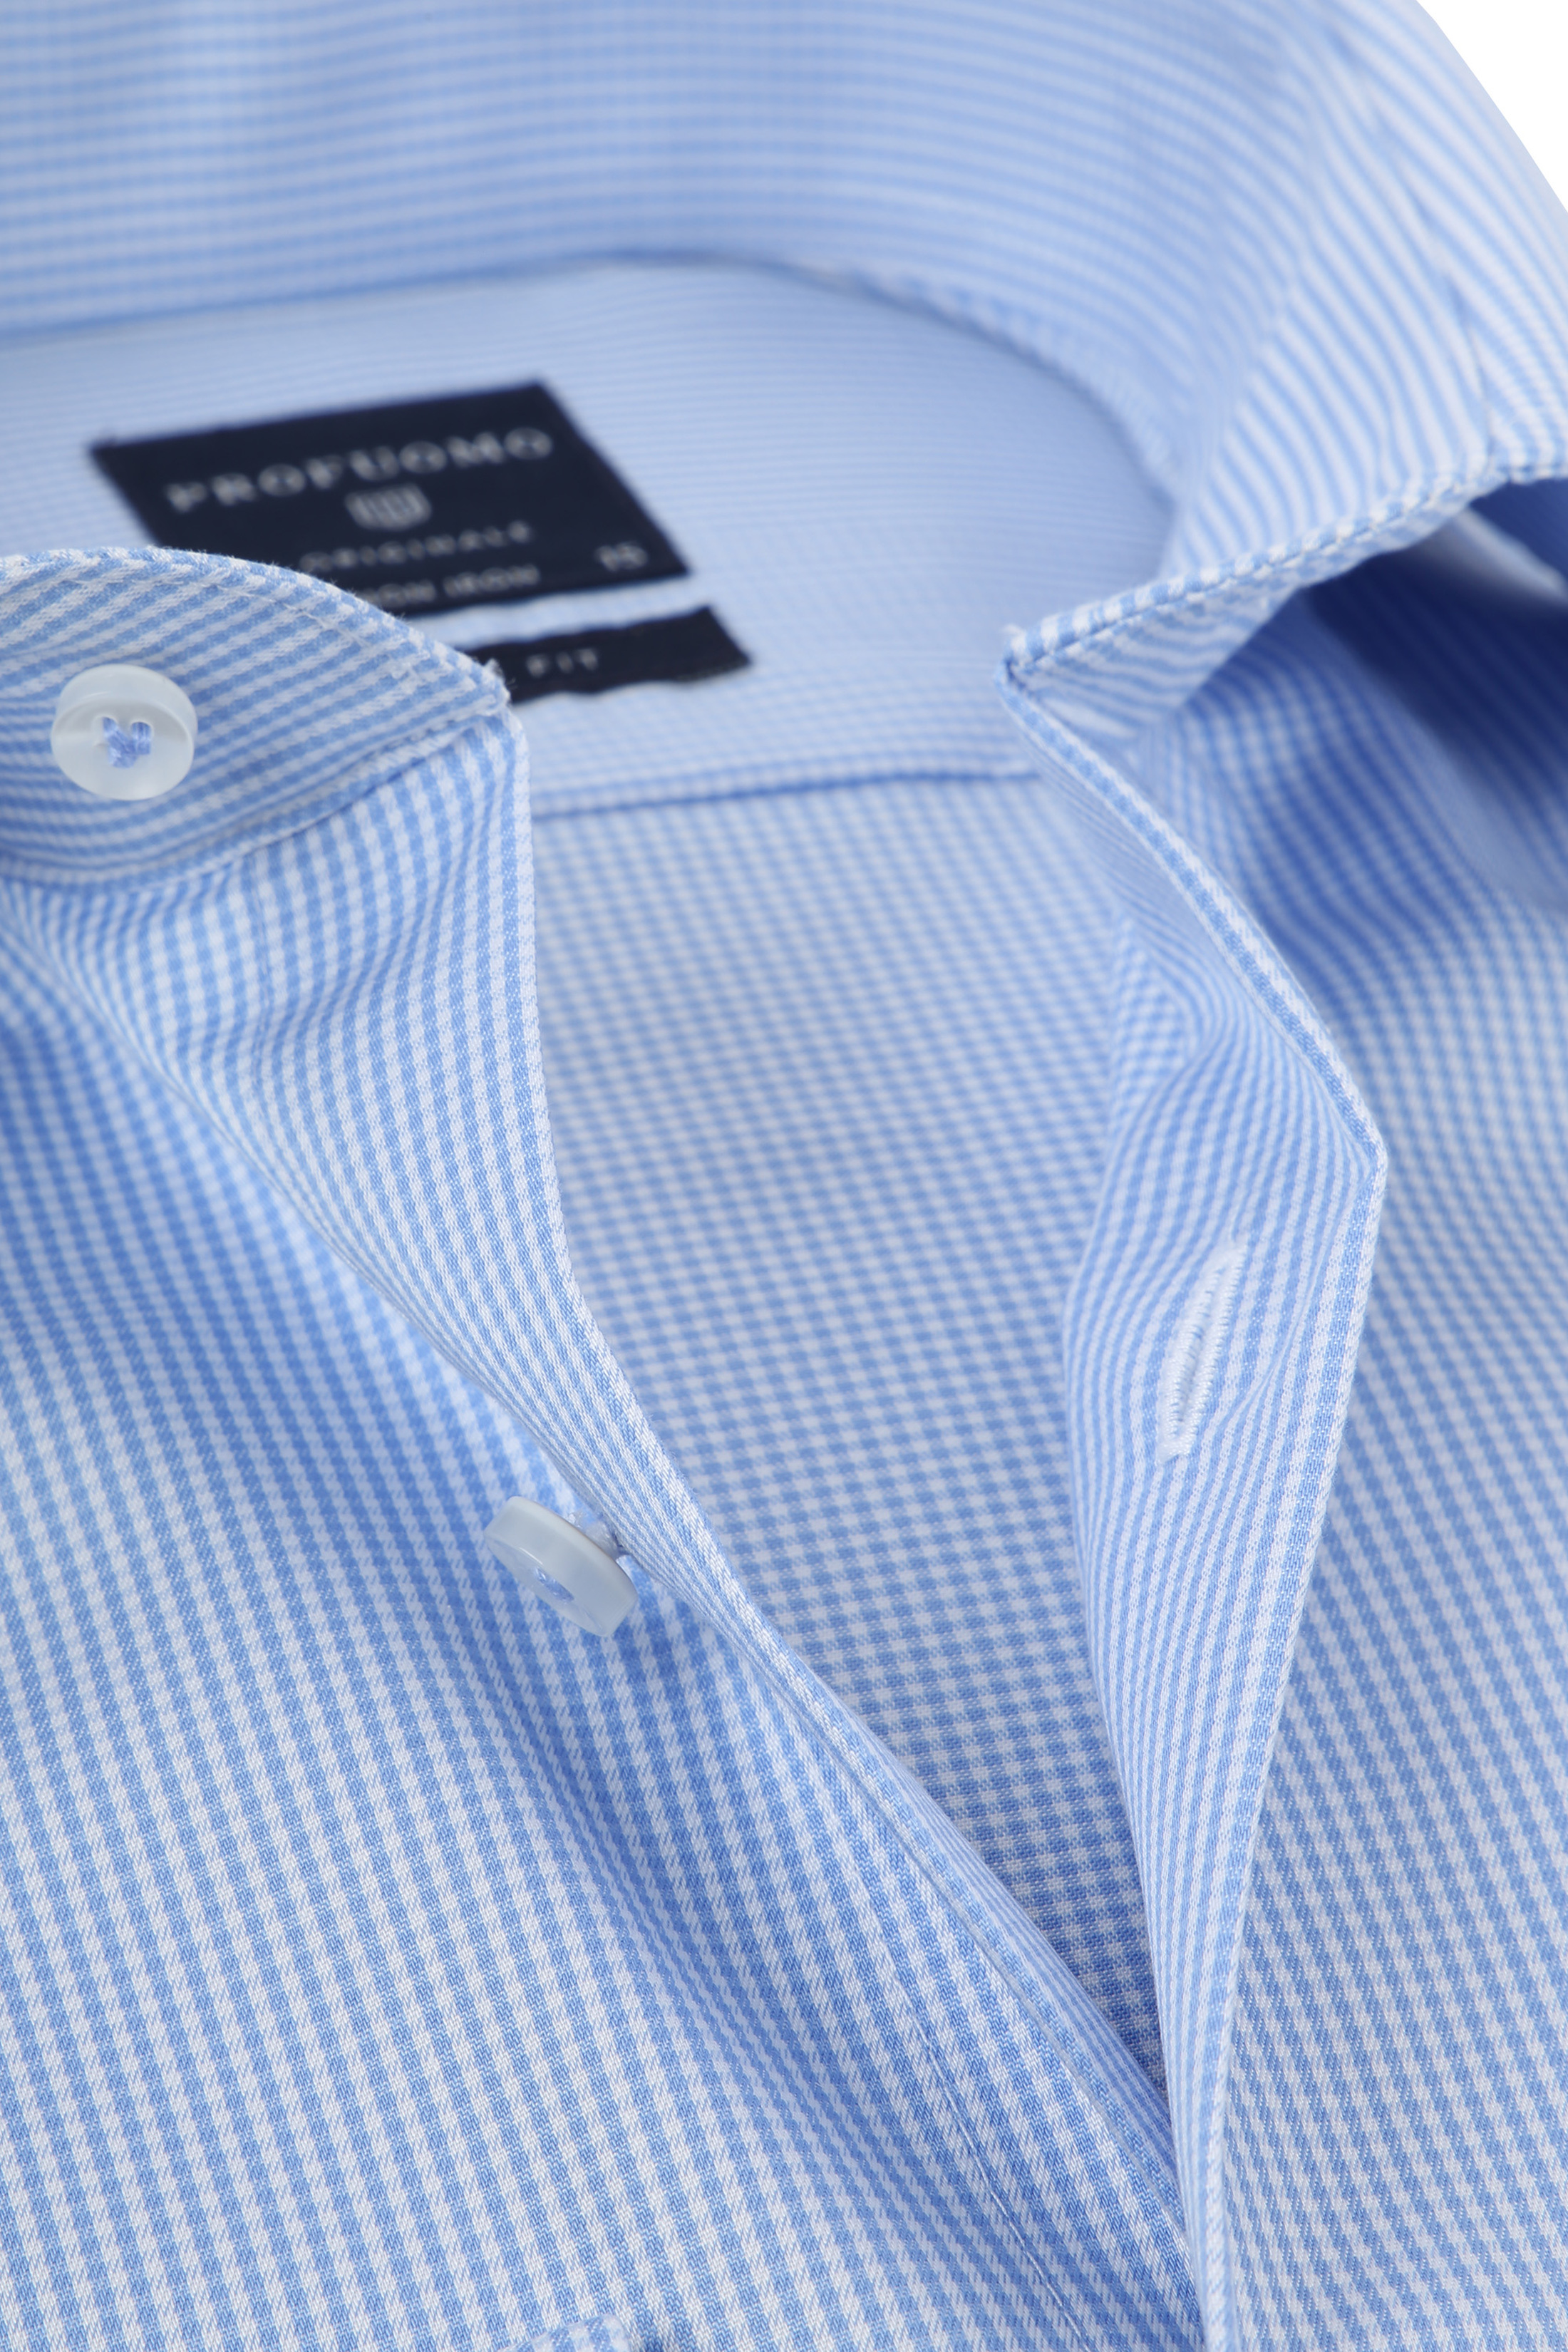 Profuomo Shirt Cutaway Blue Checks foto 1